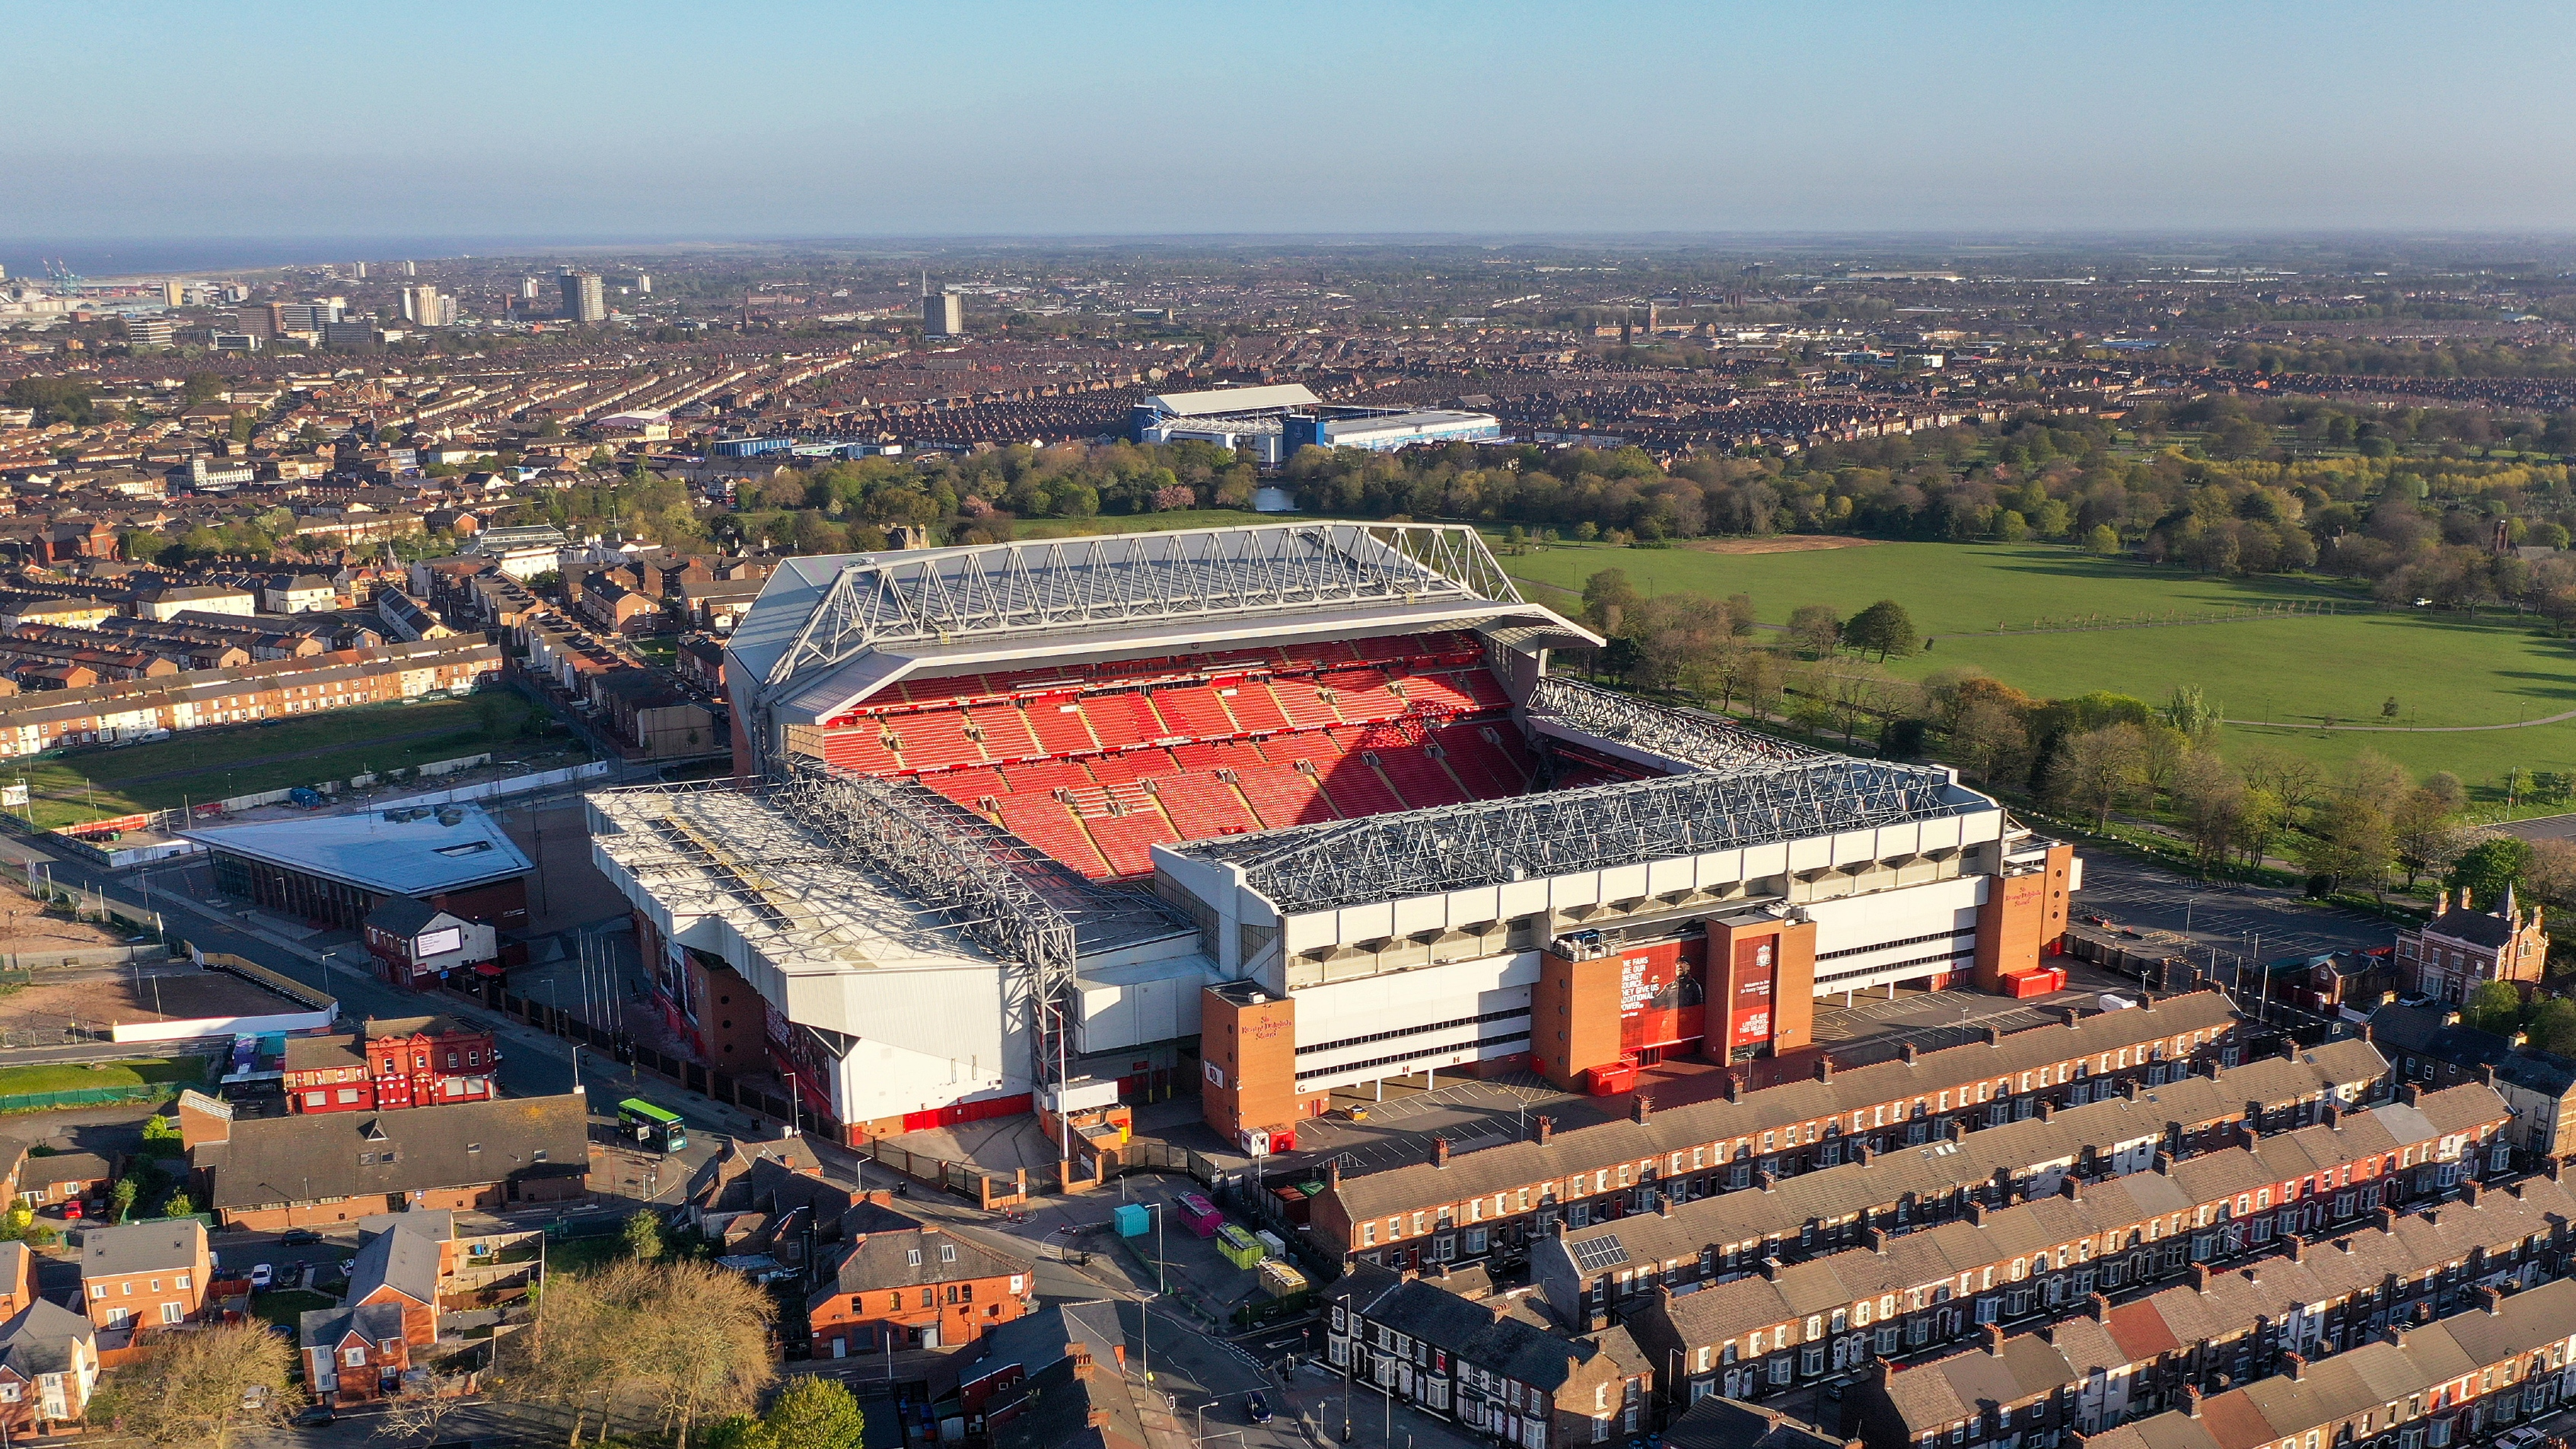 How close is Liverpool's Anfield to Everton's Goodison Park?